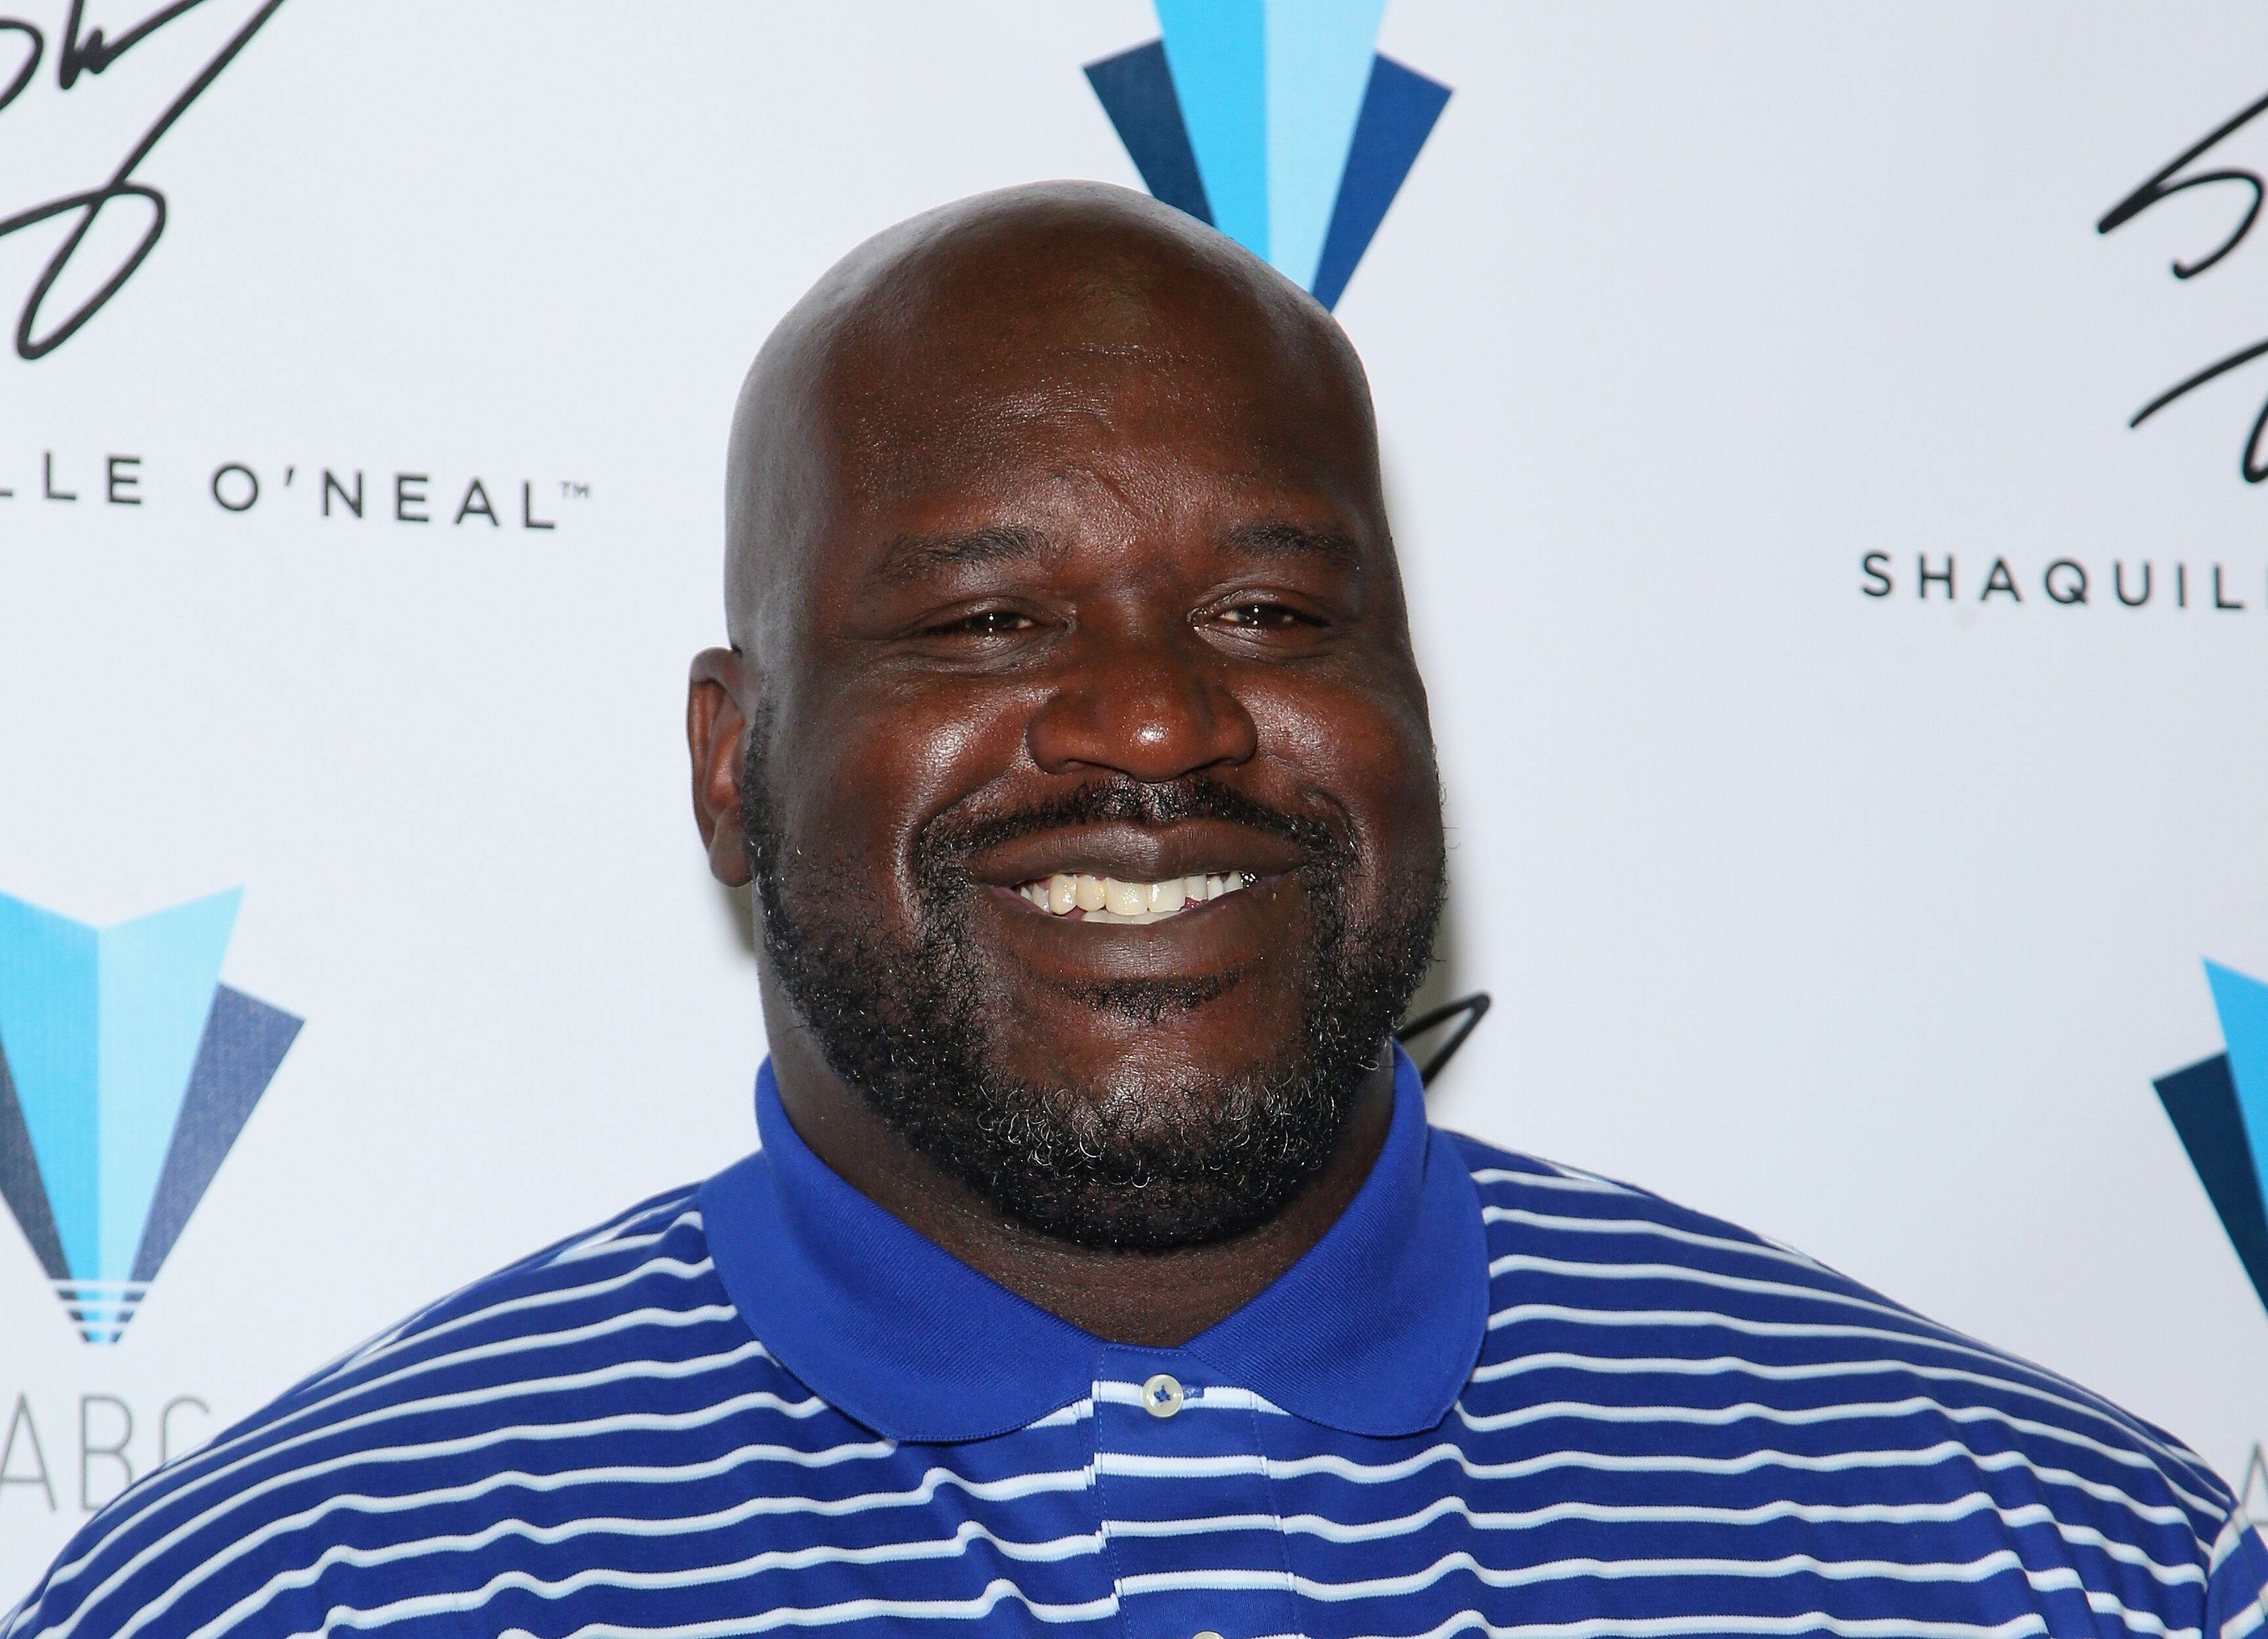 Shaquille O'Neal pose sur le stand Authentic Brands Group lors de la Licensing Expo. | Source : Getty Images